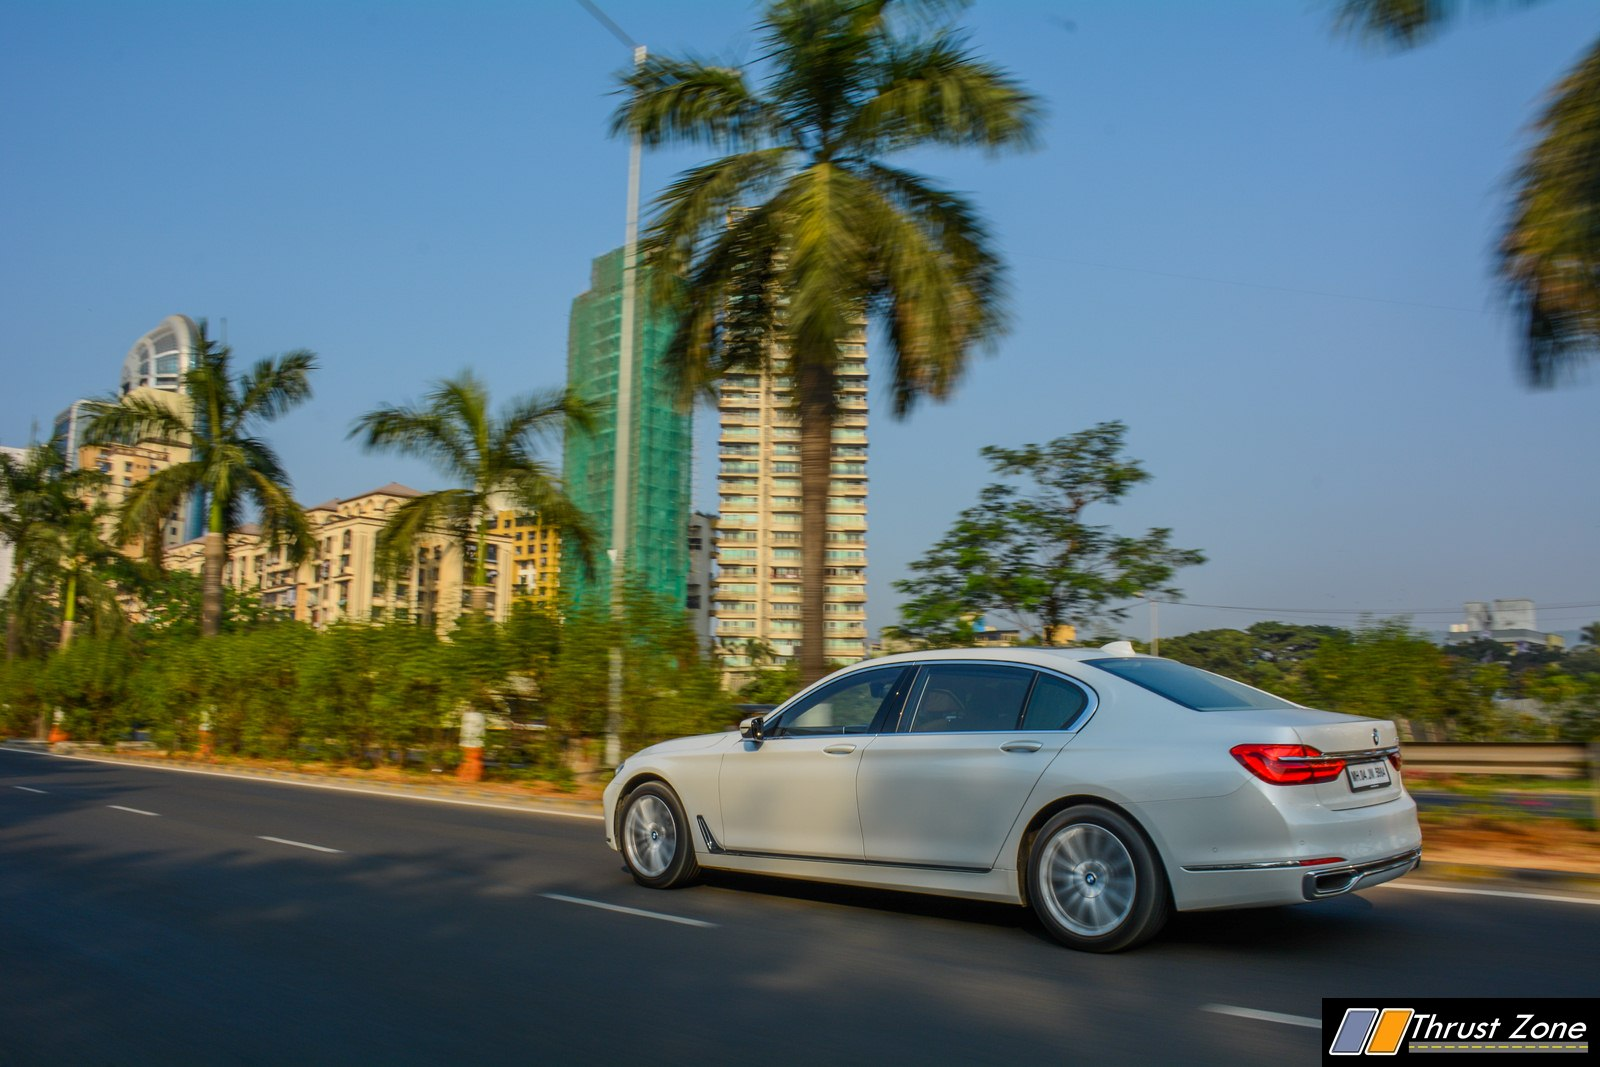 https://www.thrustzone.com/wp-content/uploads/2018/12/2018-BMW-7-SERIES-740i-INDIA-Review-11.jpg